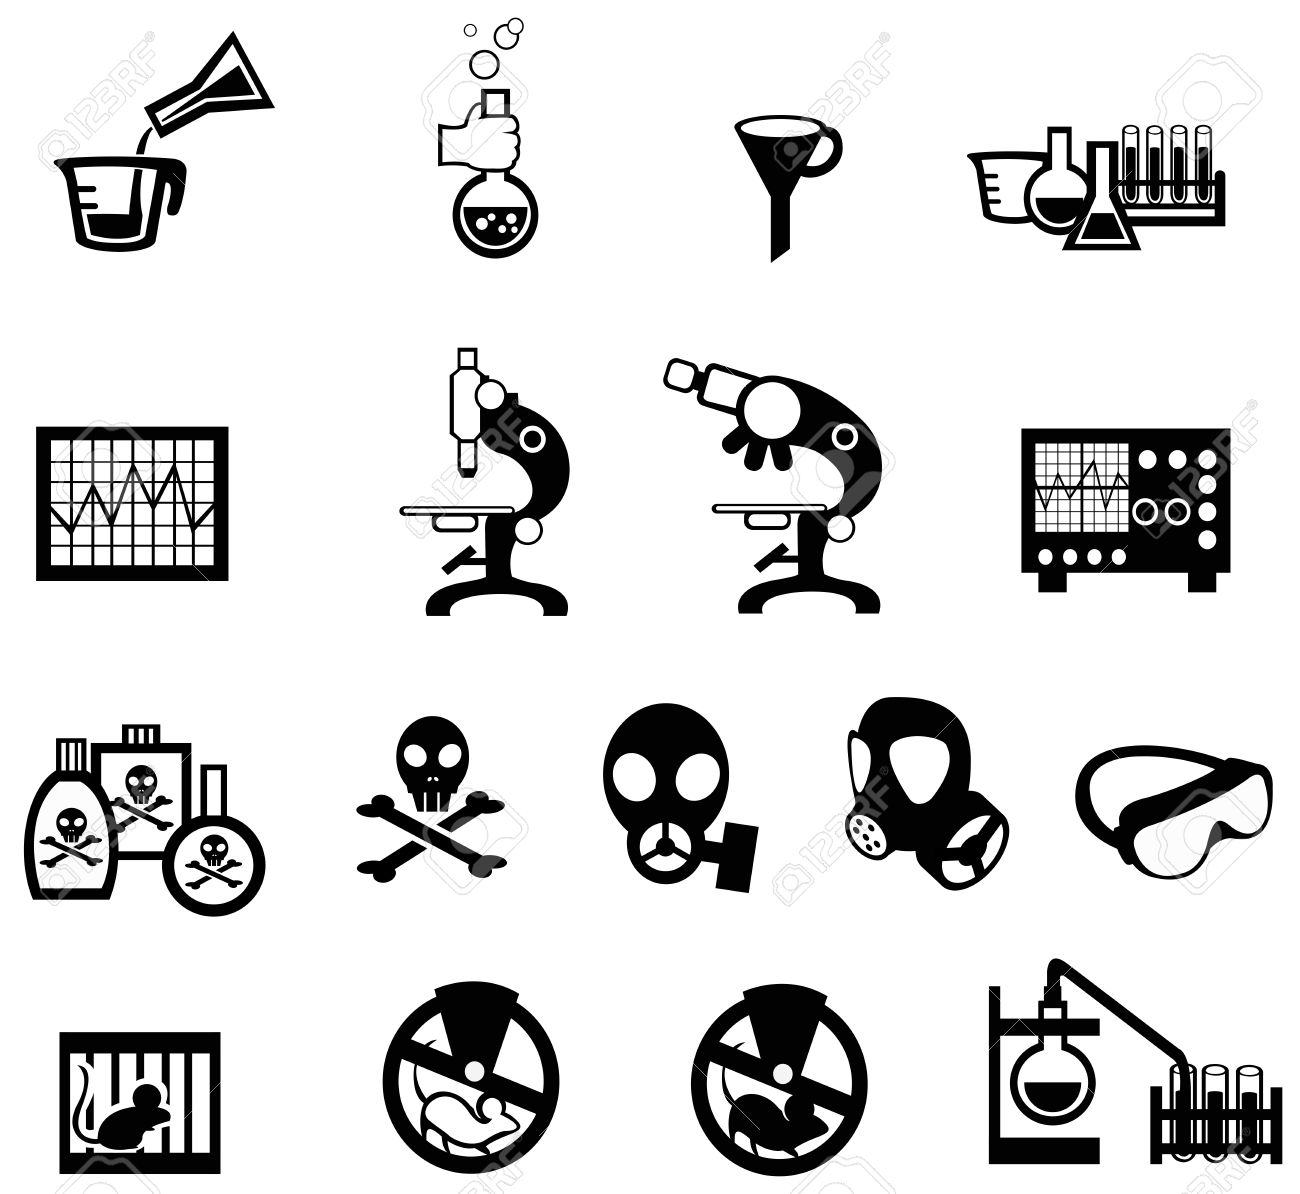 Silhouette science, chemistry, and engineering tool icon set 2, create by vector Stock Vector - 28327345